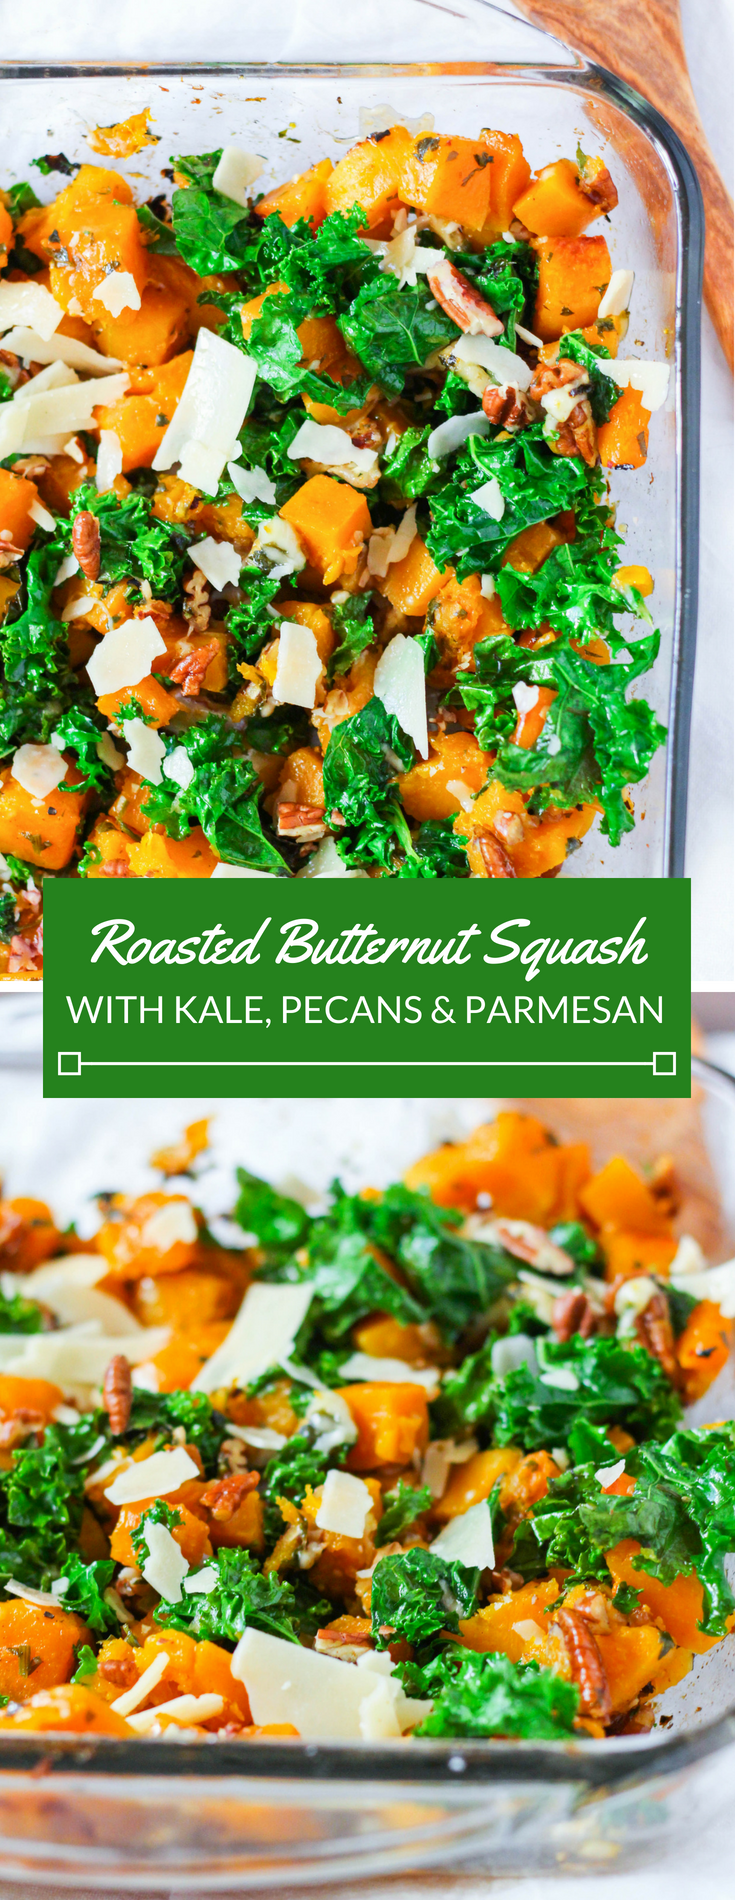 Roasted Butternut Squash with Kale, Pecans & Parmesan